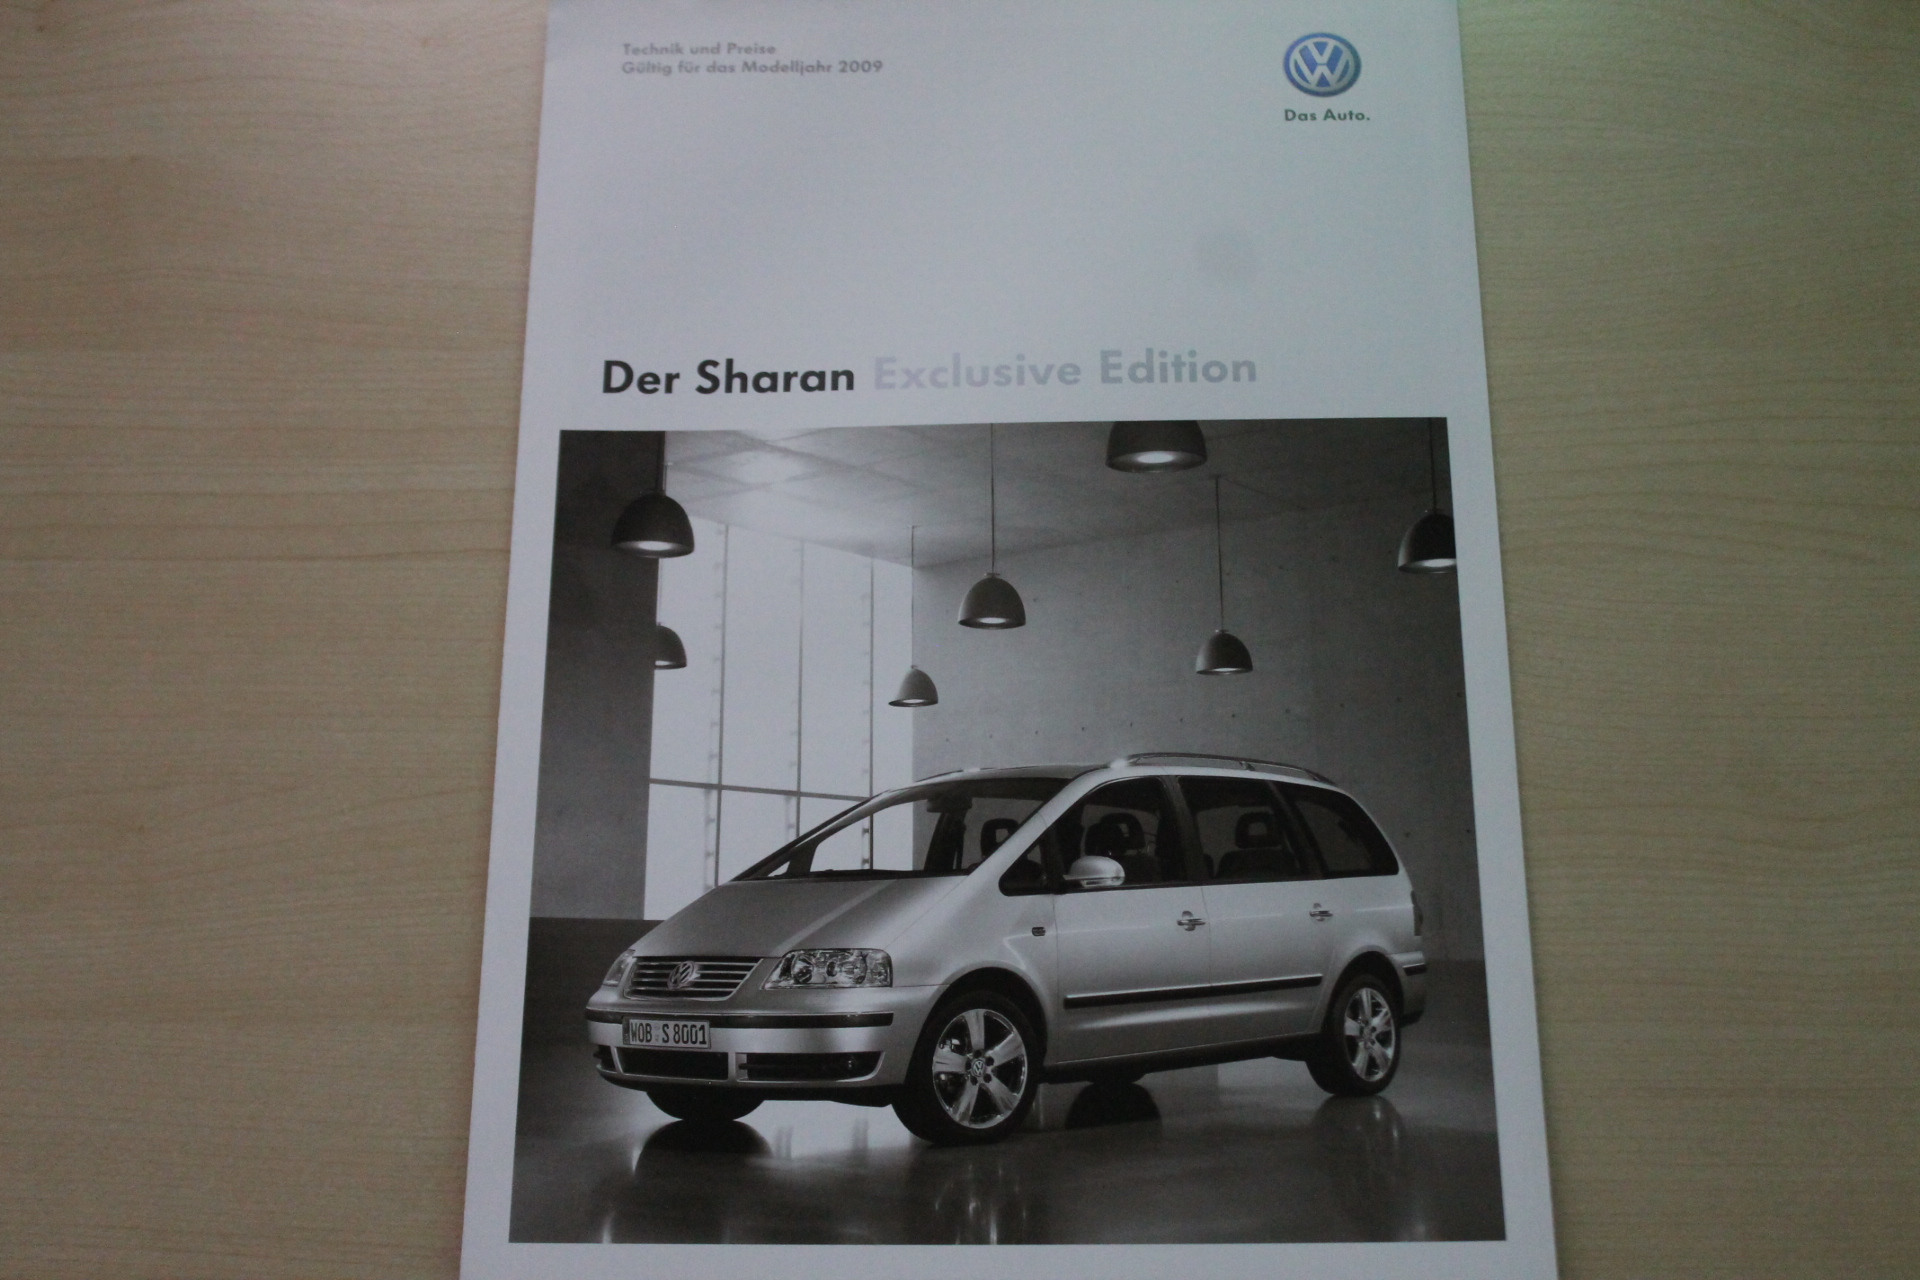 VW Sharan Exclusive Edition - Technik & Preise & Extras - Prospekt 11/20